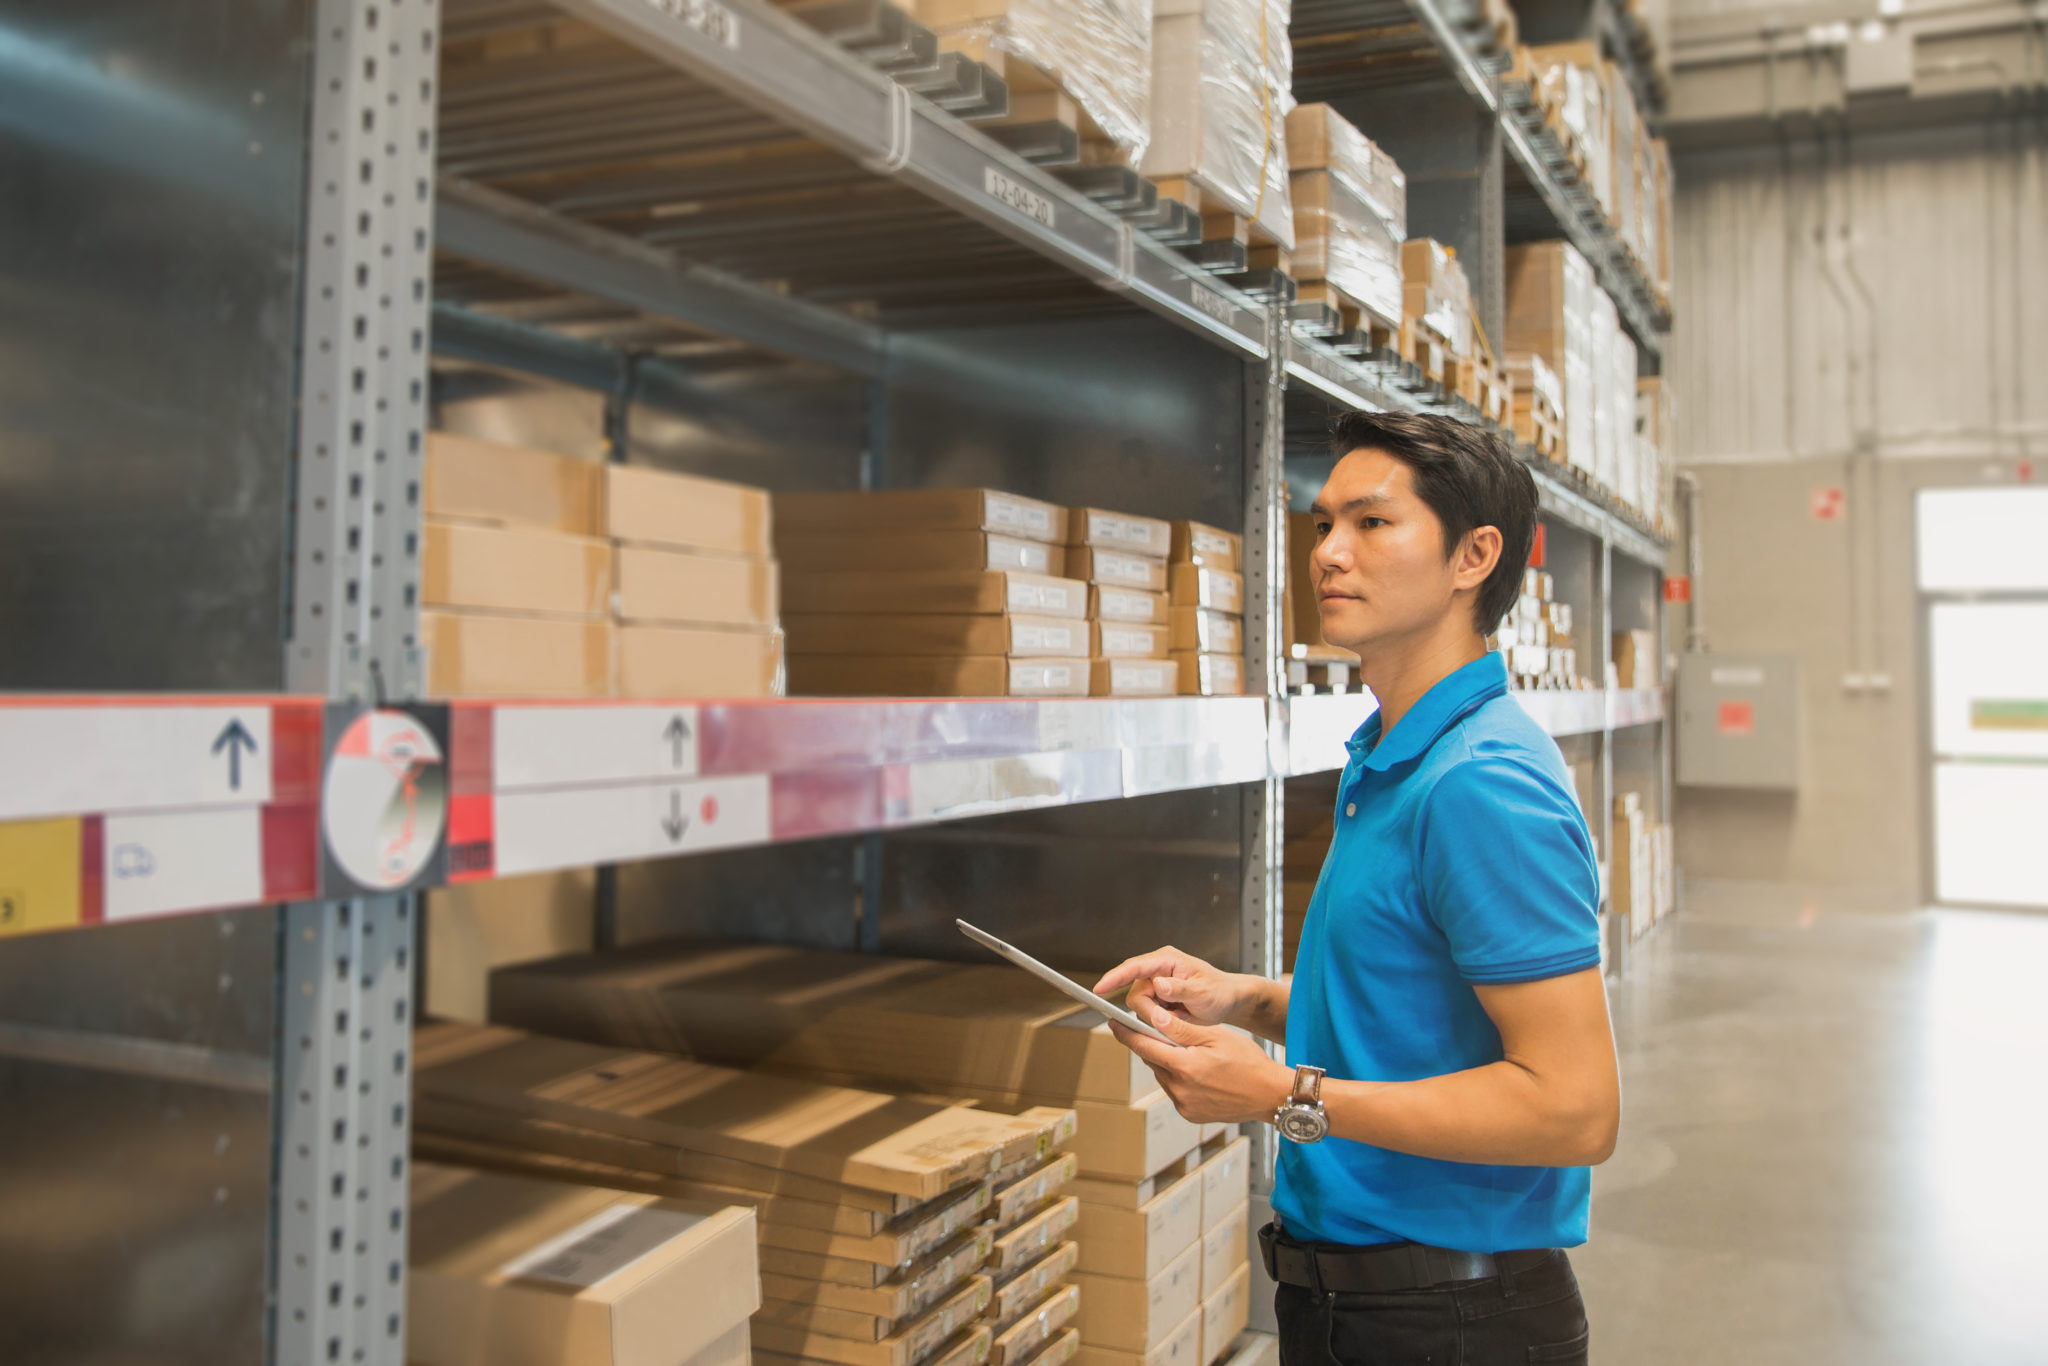 Order Management Systems Help Retailers Deliver on Customer Experience